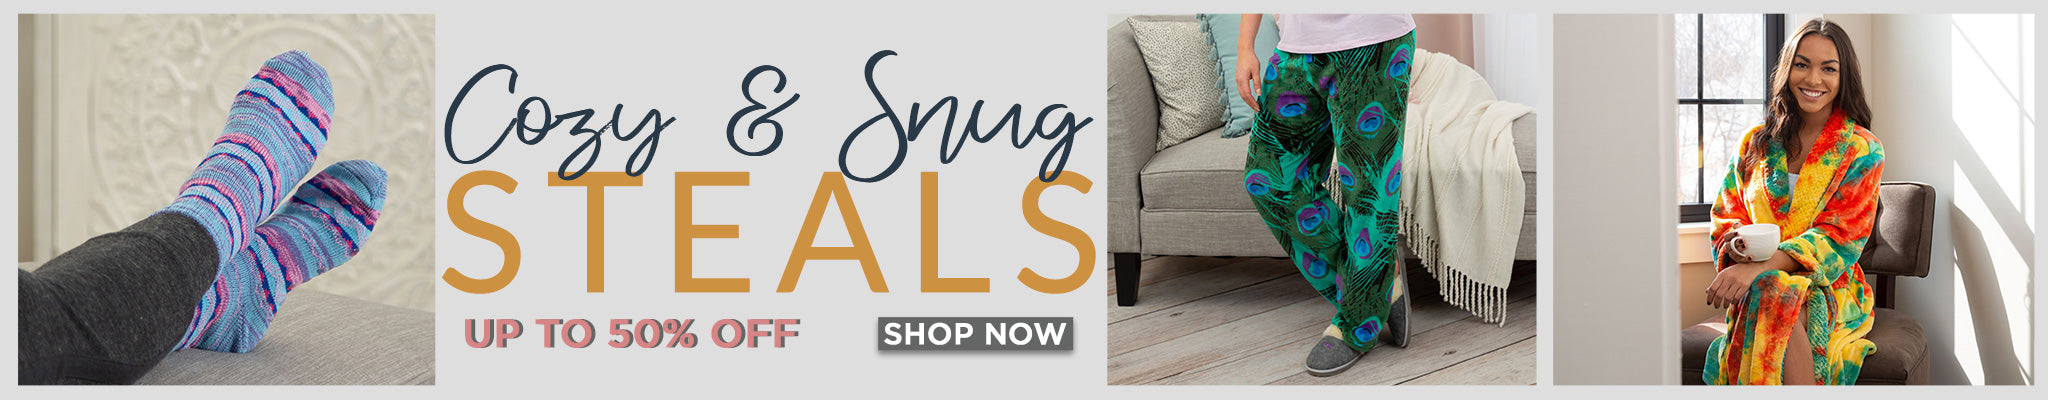 Cozy & Snug Steals